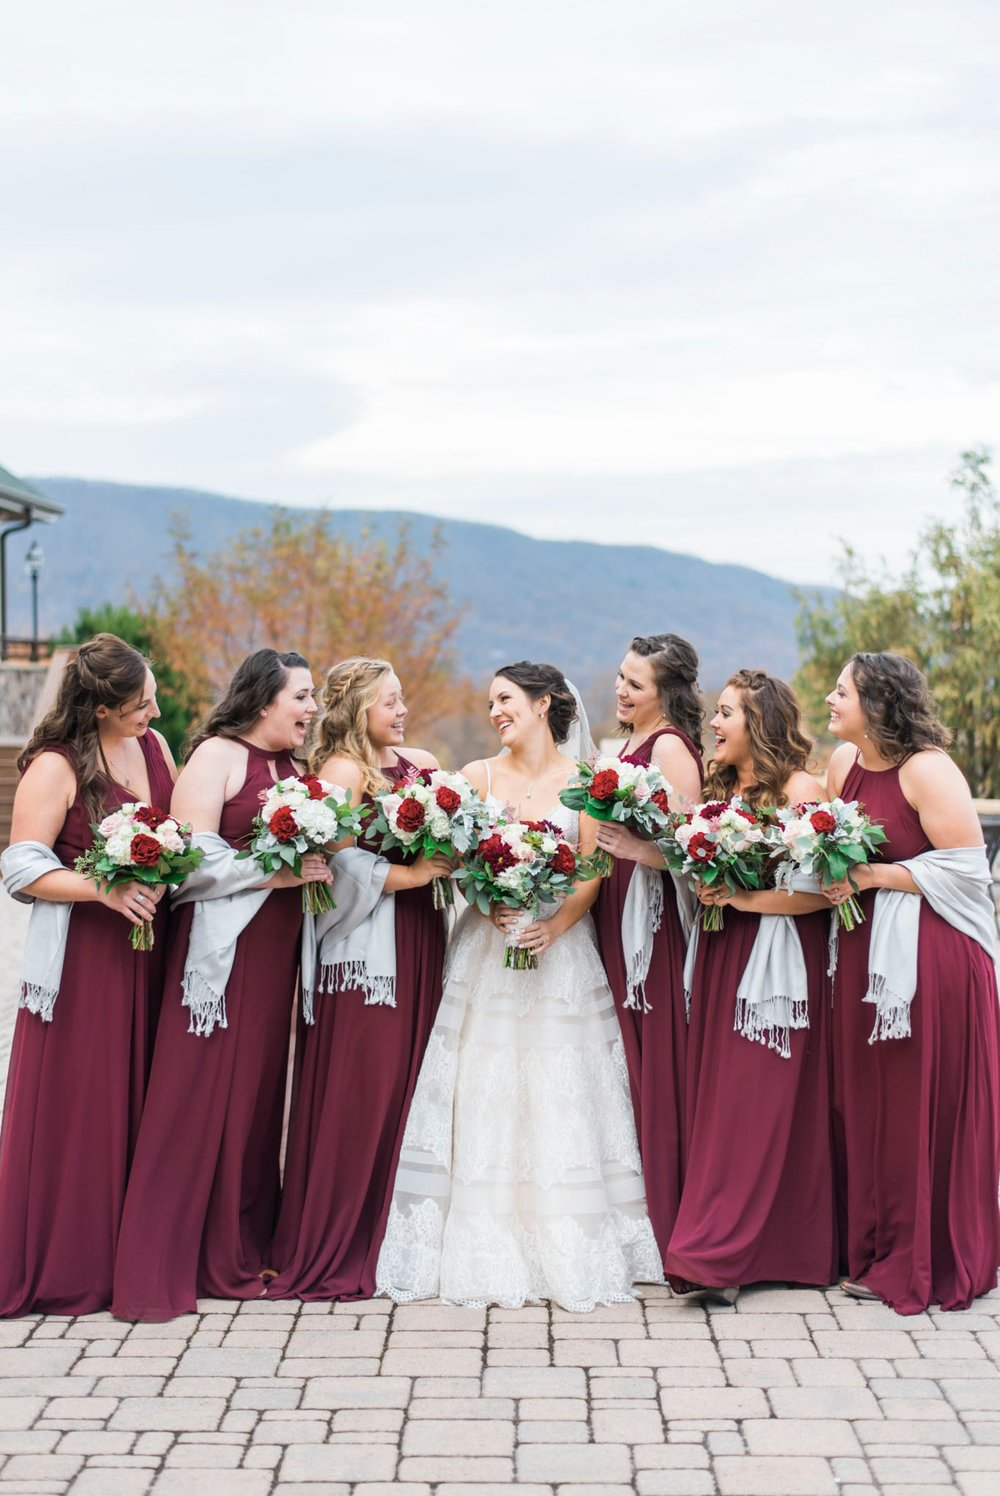 IrvineEstate_LexingtonVA_Wedding_FallWedding_VirginiaWeddingPhotographer 37.jpg